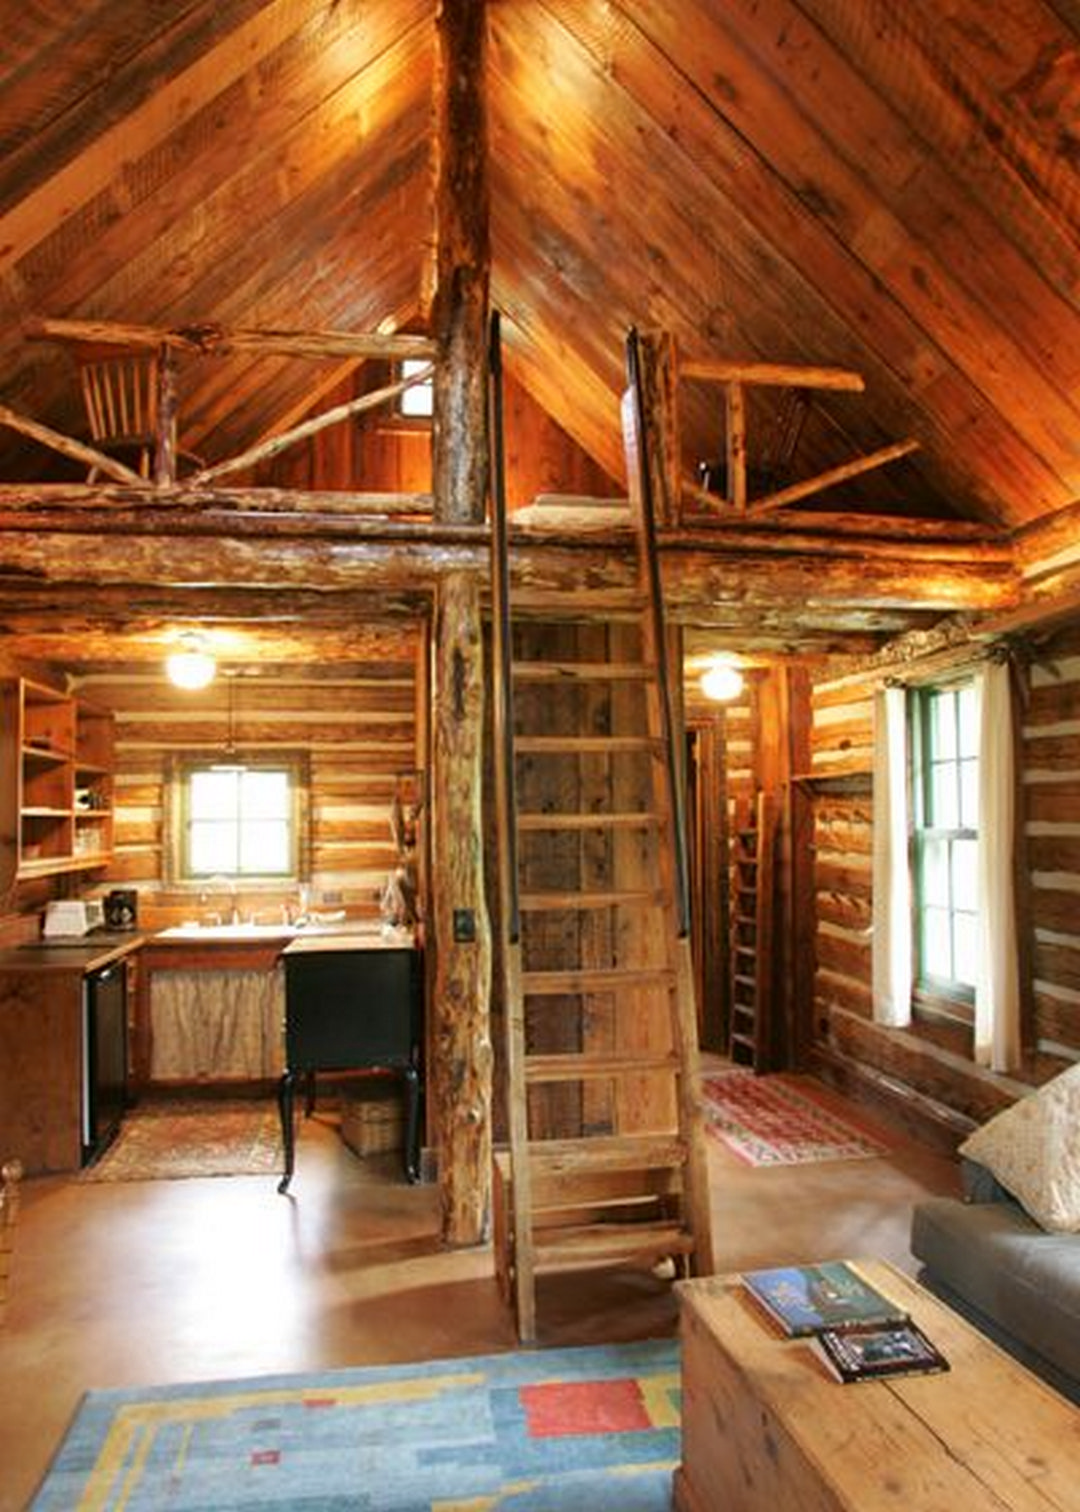 49 gorgeous rustic cabin interior ideas cabin interiors for Interior designs for small cabins